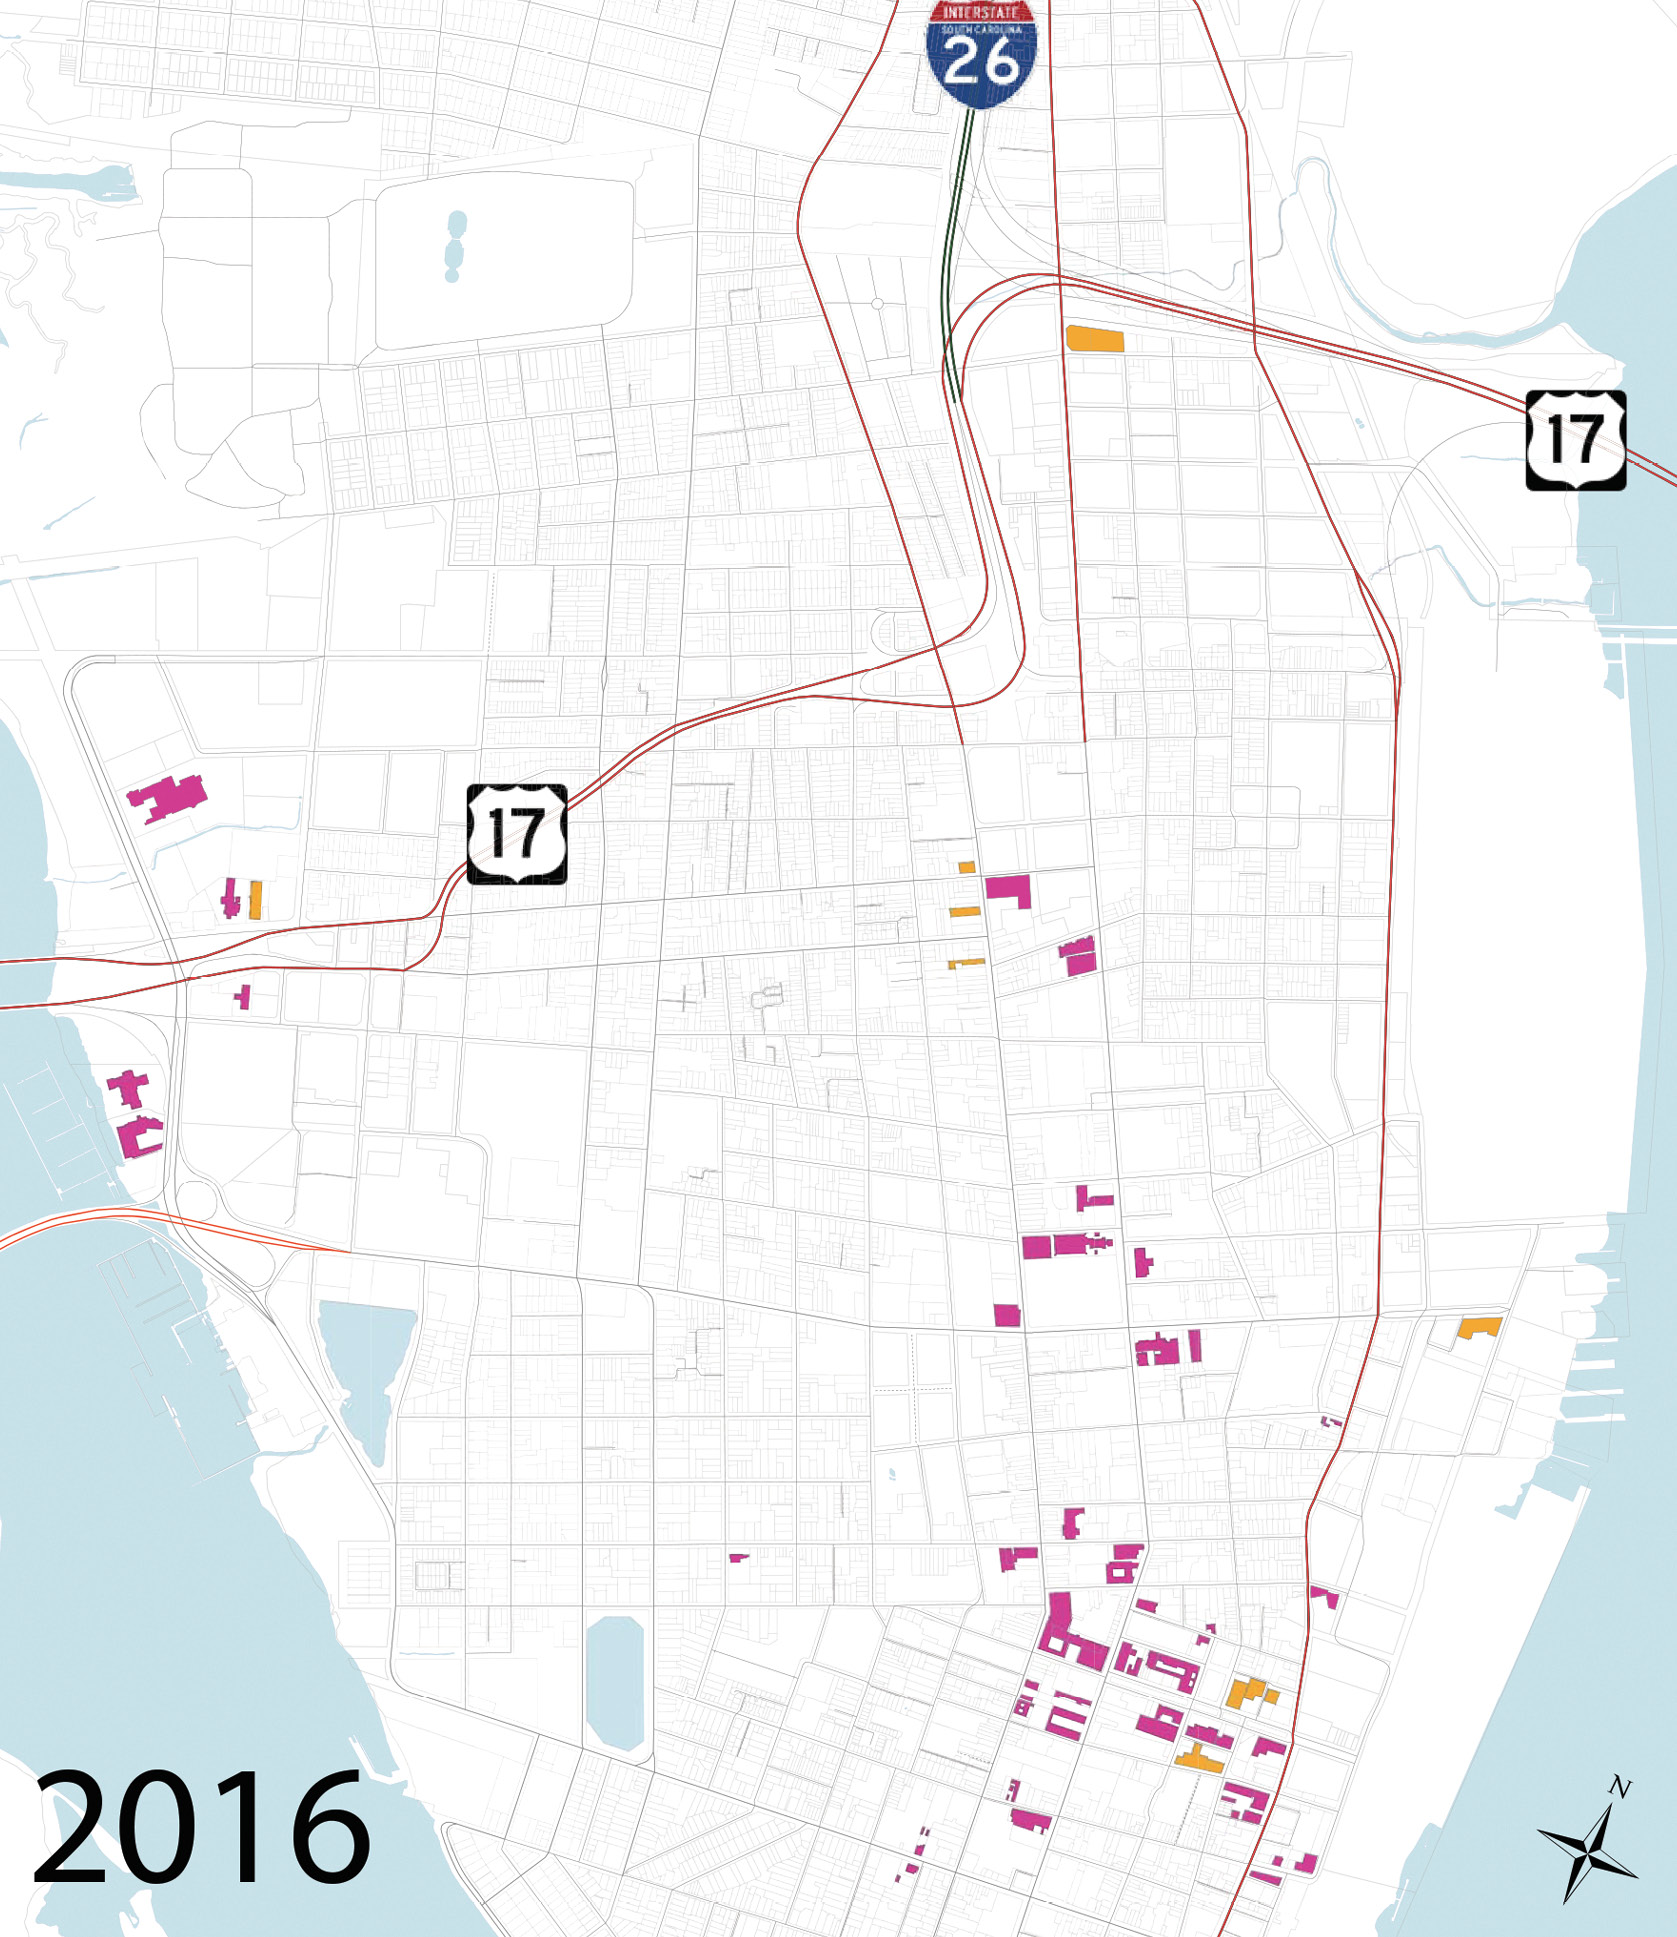 """This map from the Peninsula Hotel Study, prepared by the City of Charleston's department of Planning, Preservation, and Sustainability and division of Business and Neighborhood Services in June 2016, shows all existing hotels and those under construction in magenta and 11 recently approved in orange. Upon completion, the peninsula will have nearly 6,000 guest accommodations. To read the full report, visit <a href=""""http://www.charleston-sc.gov/DocumentCenter/View/11618"""">www.charleston-sc.gov/DocumentCenter/View/11618</a>."""